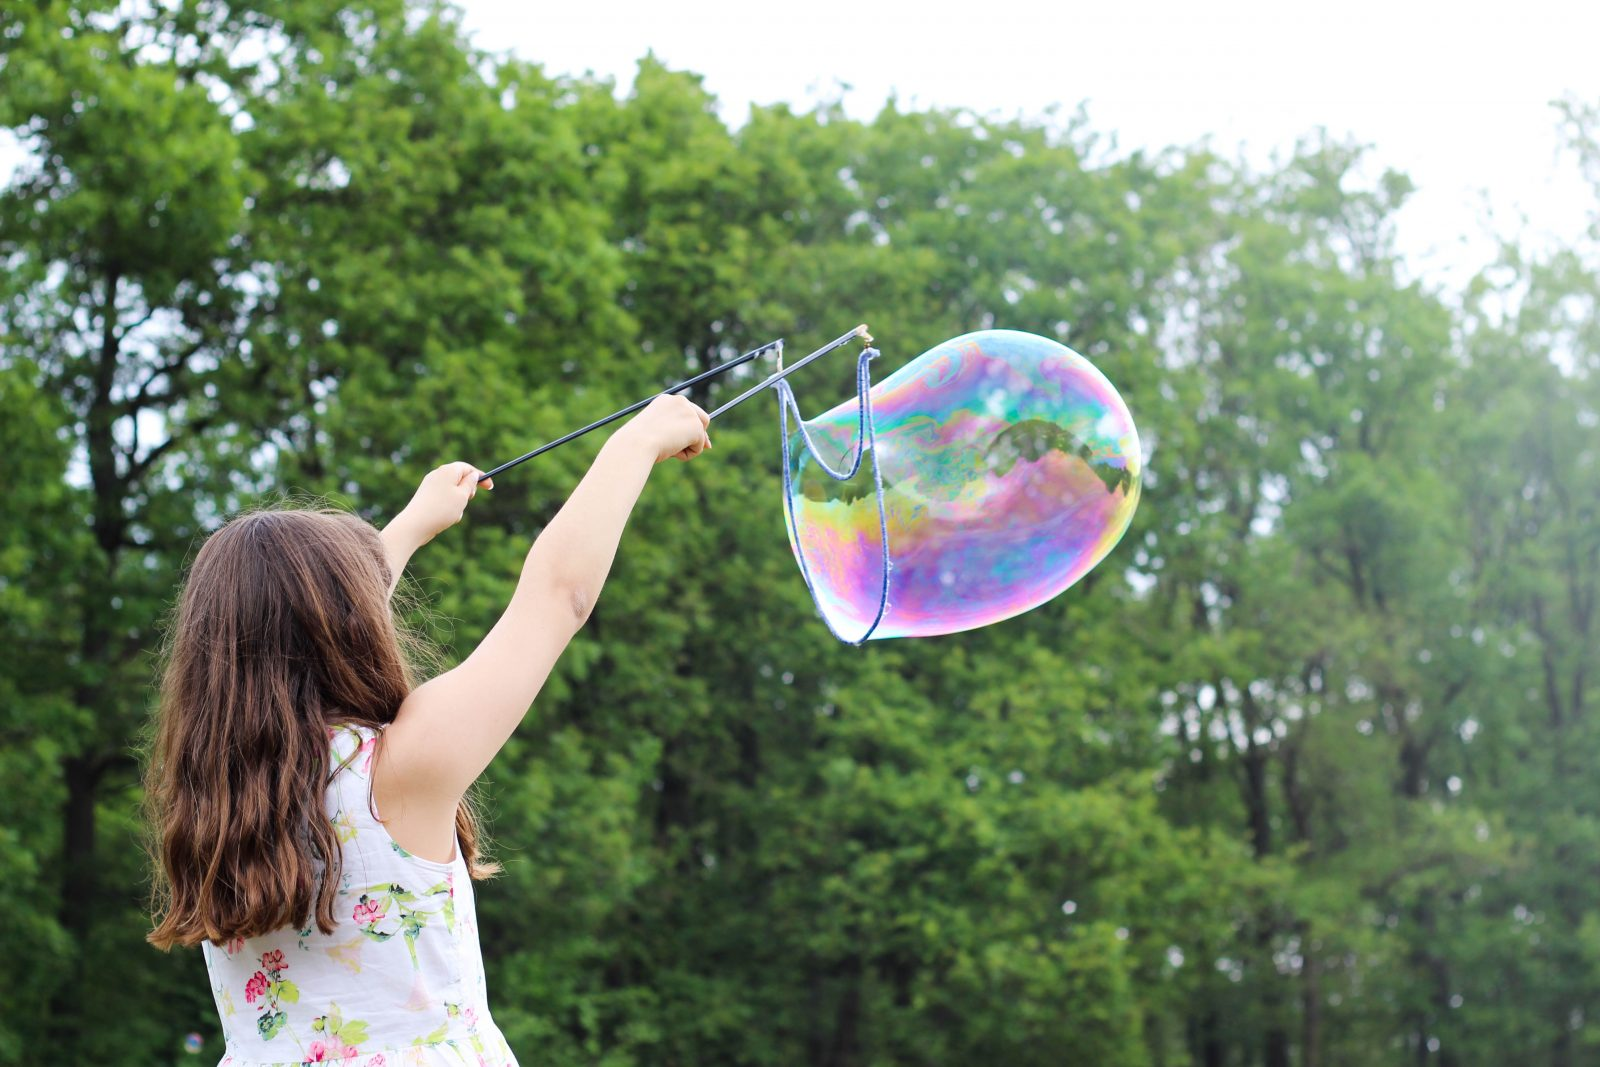 How to Make Homemade Bubbles – Simple and Fun Ideas